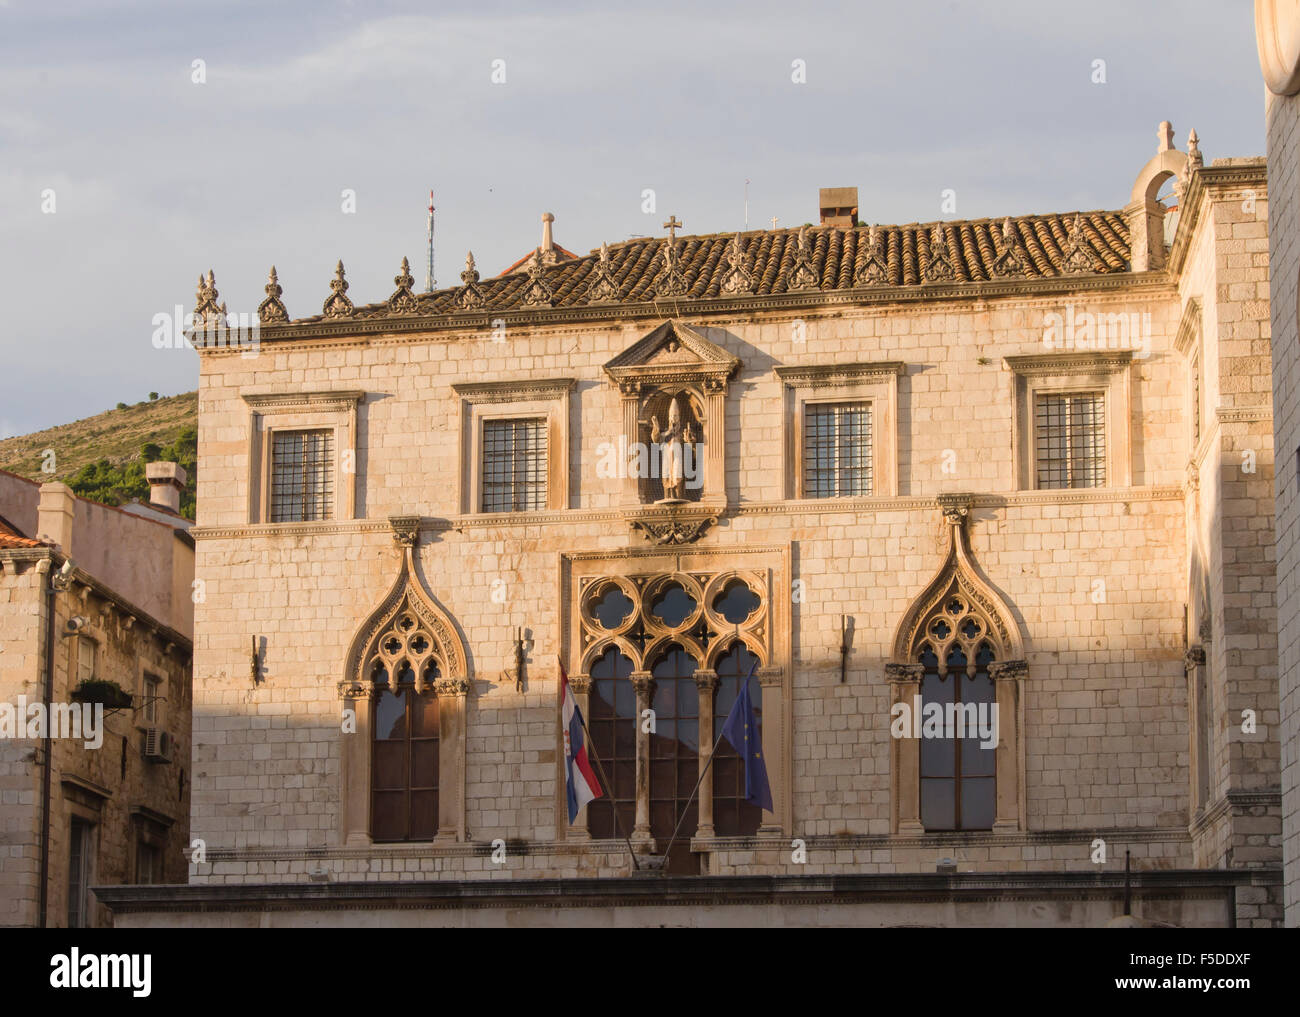 Sunset on the facade of the Sponza Palace in the historical old town in Dubrovnik Croatia a Unesco World Heritage - Stock Image